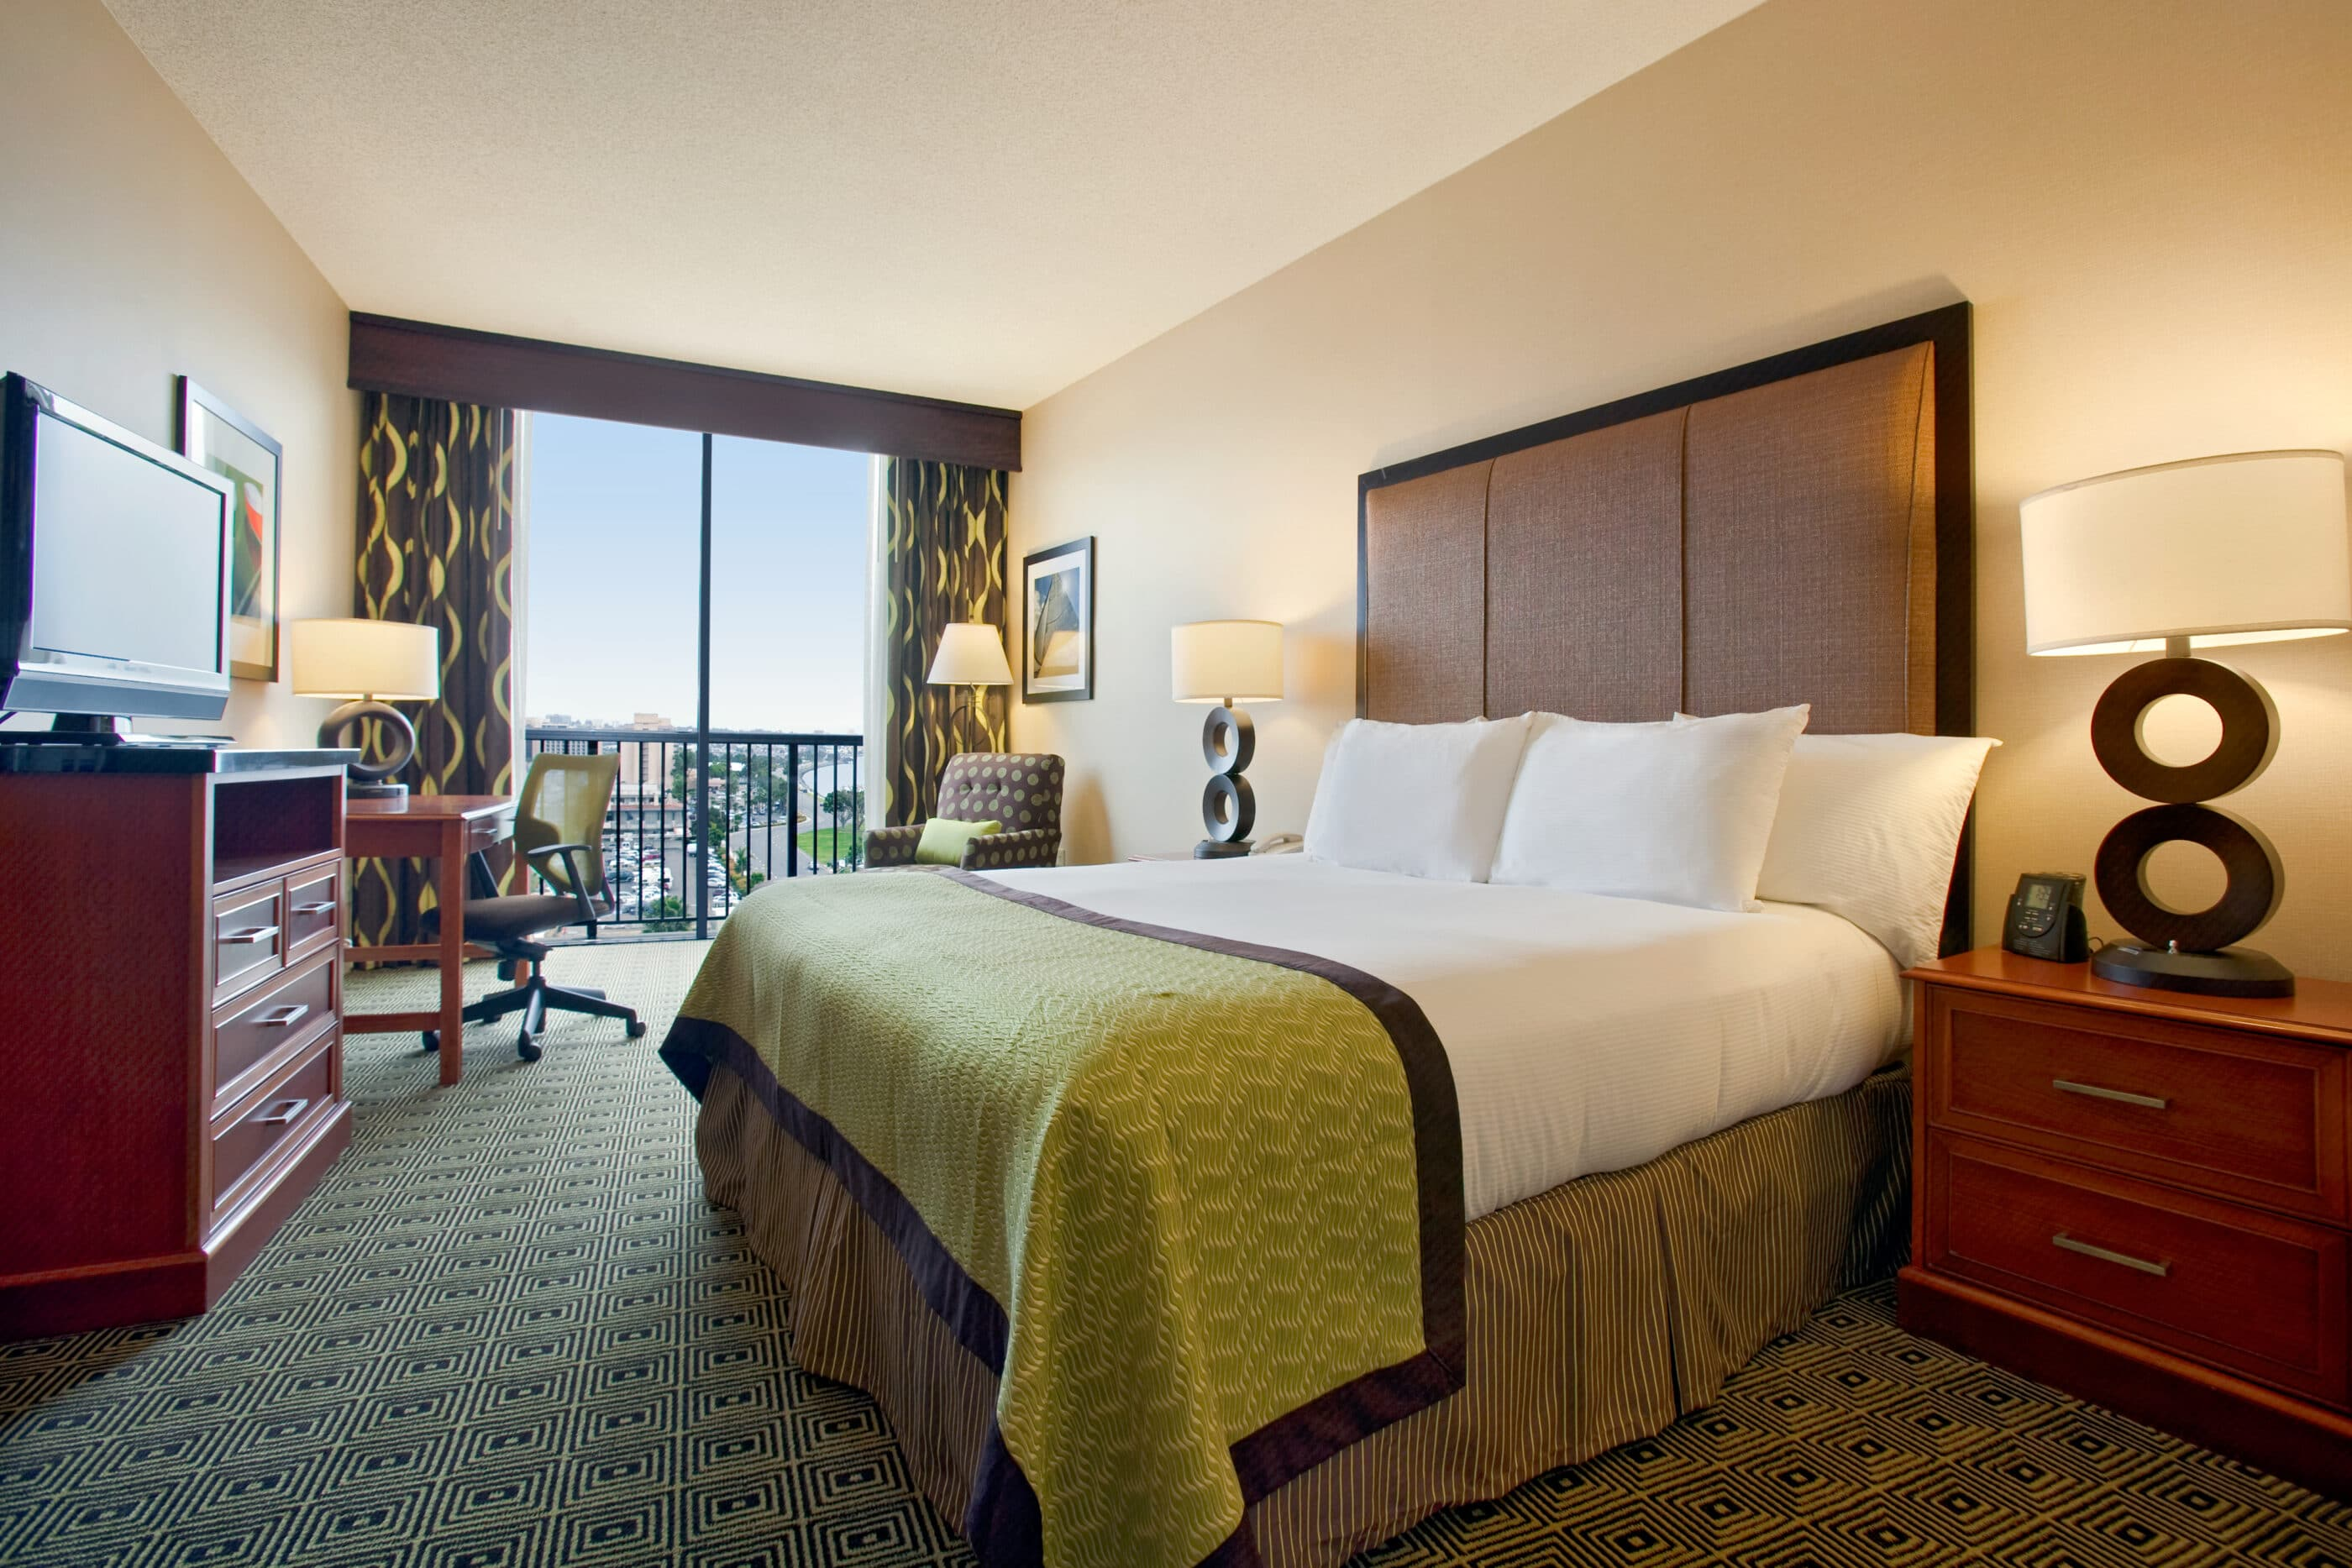 The Hilton San Diego Airport Hotel is one of the closest hotels to the San Diego airport.